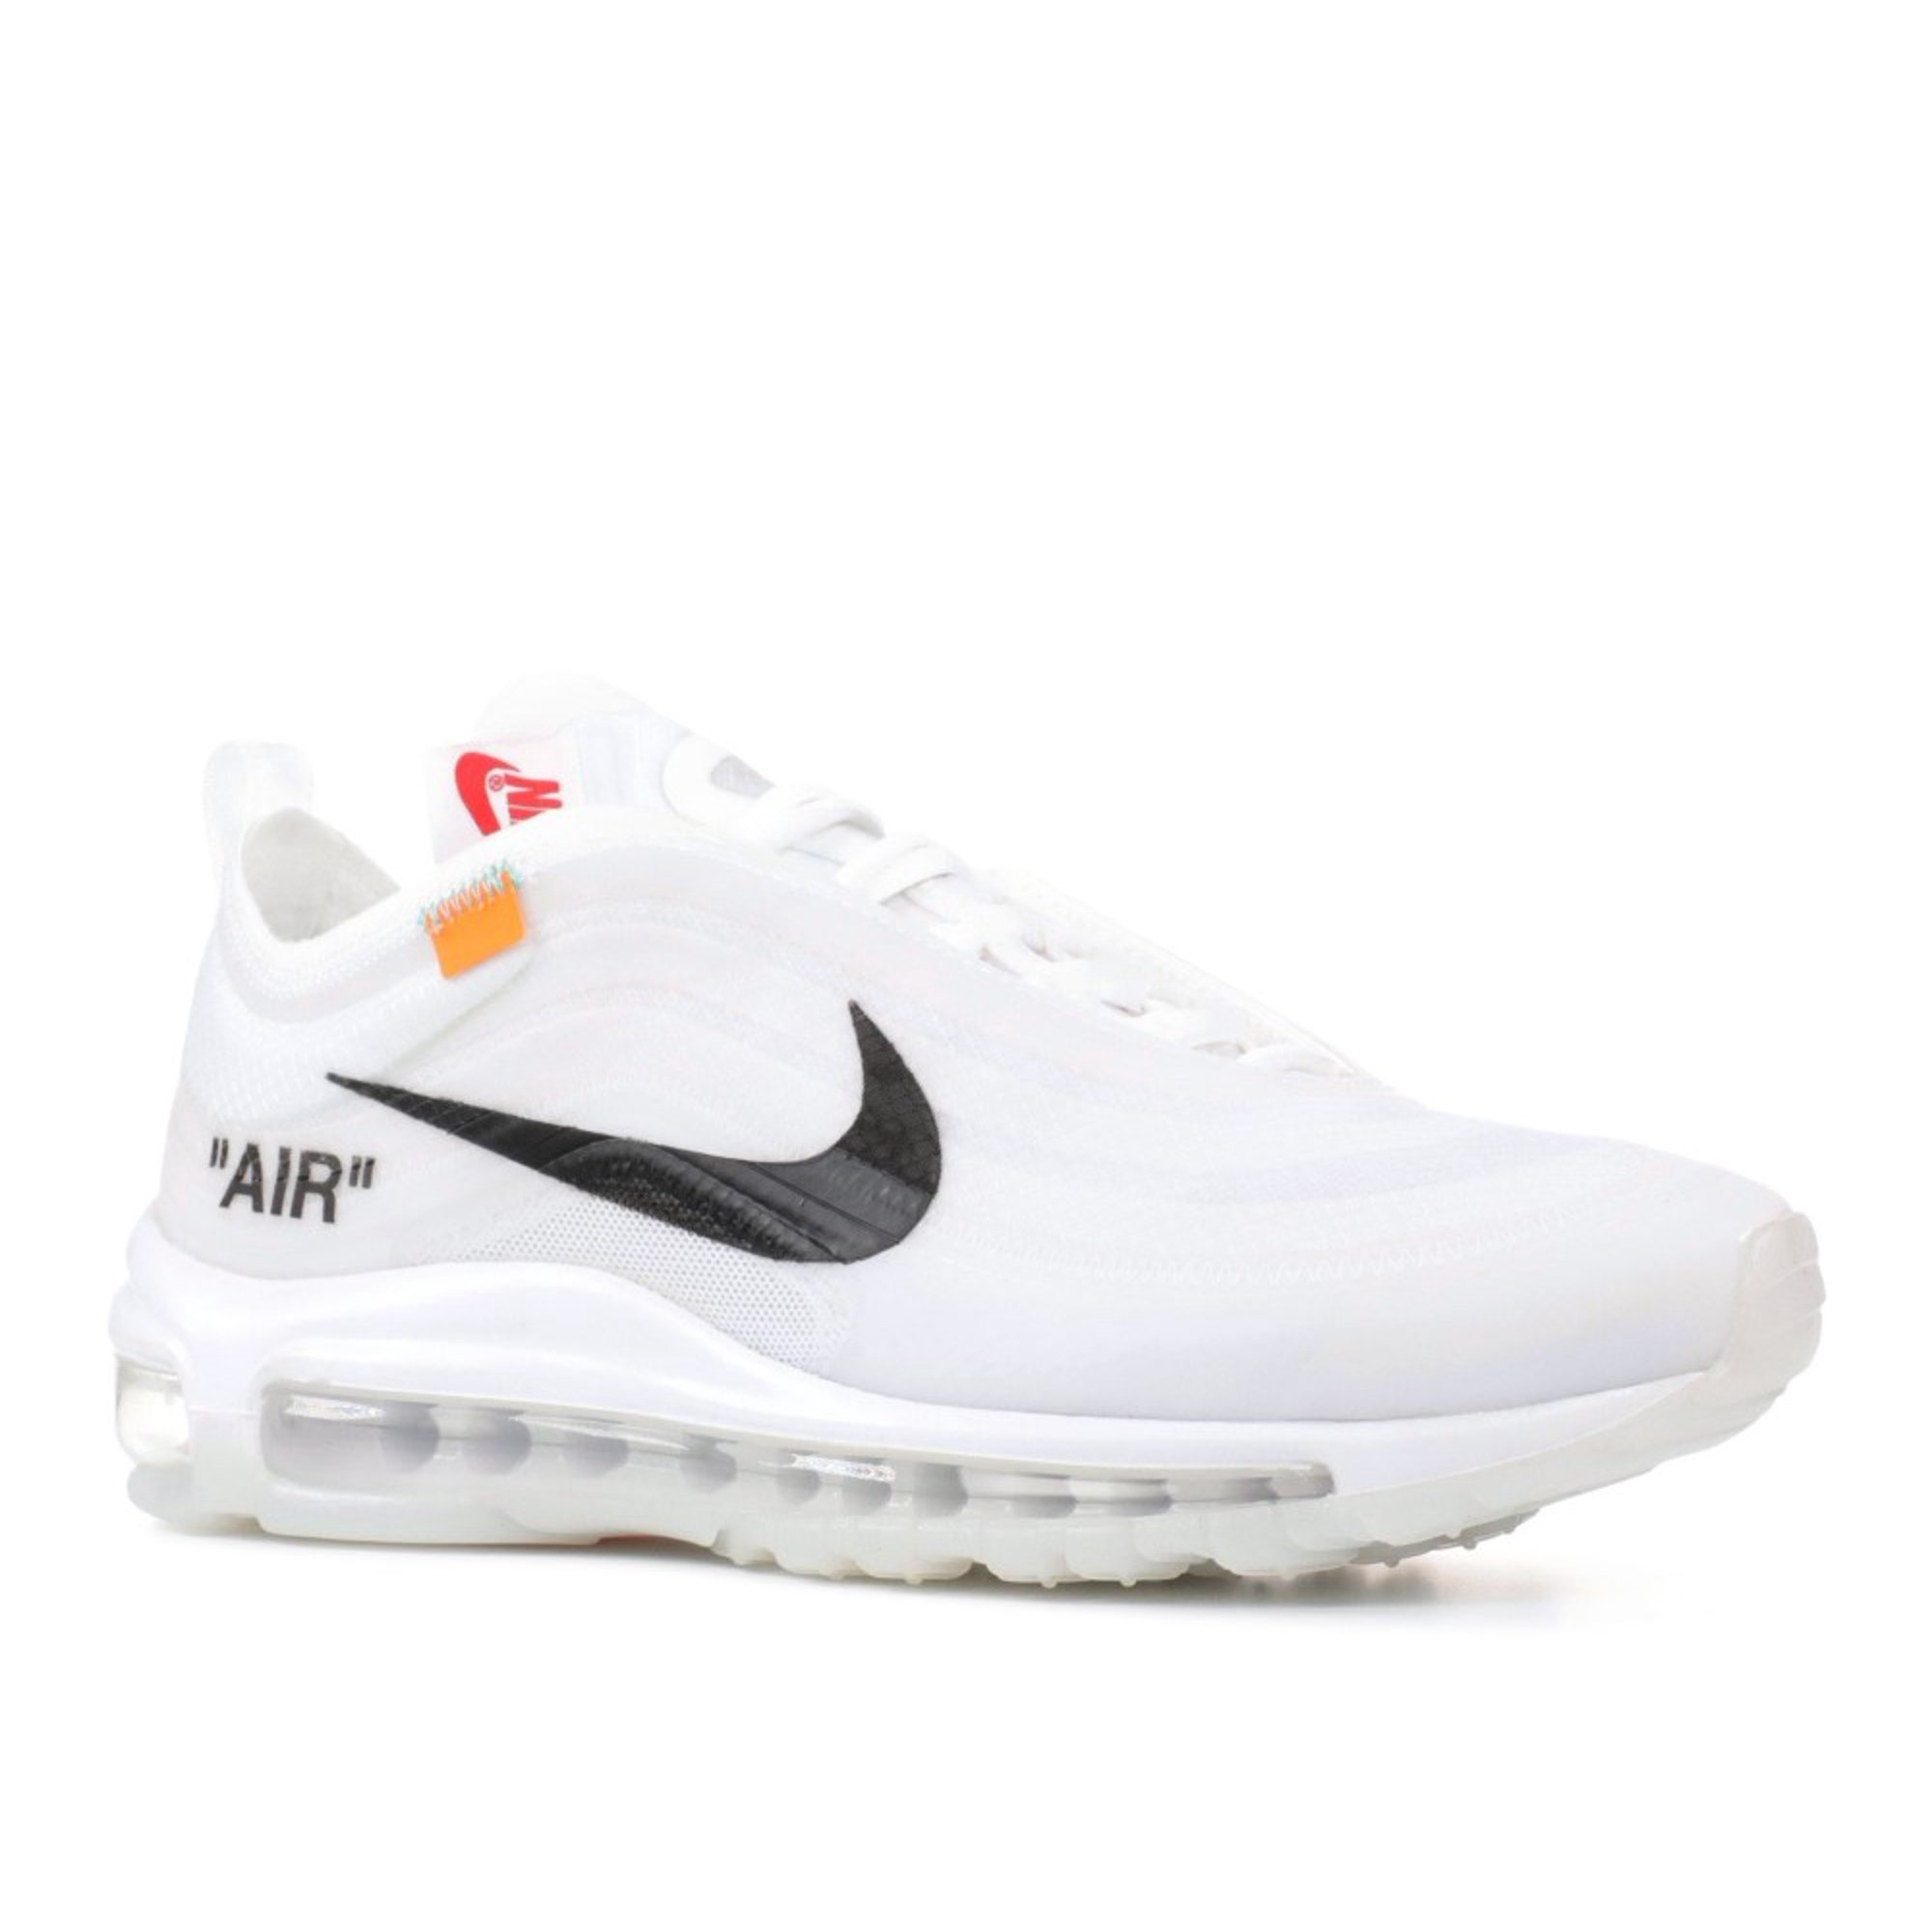 the latest 84fd5 84862 Nike - Men - The 10  Nike Air Max 97 Og  Off-White  - Aj4585-100 - Size 9.5    Walmart Canada